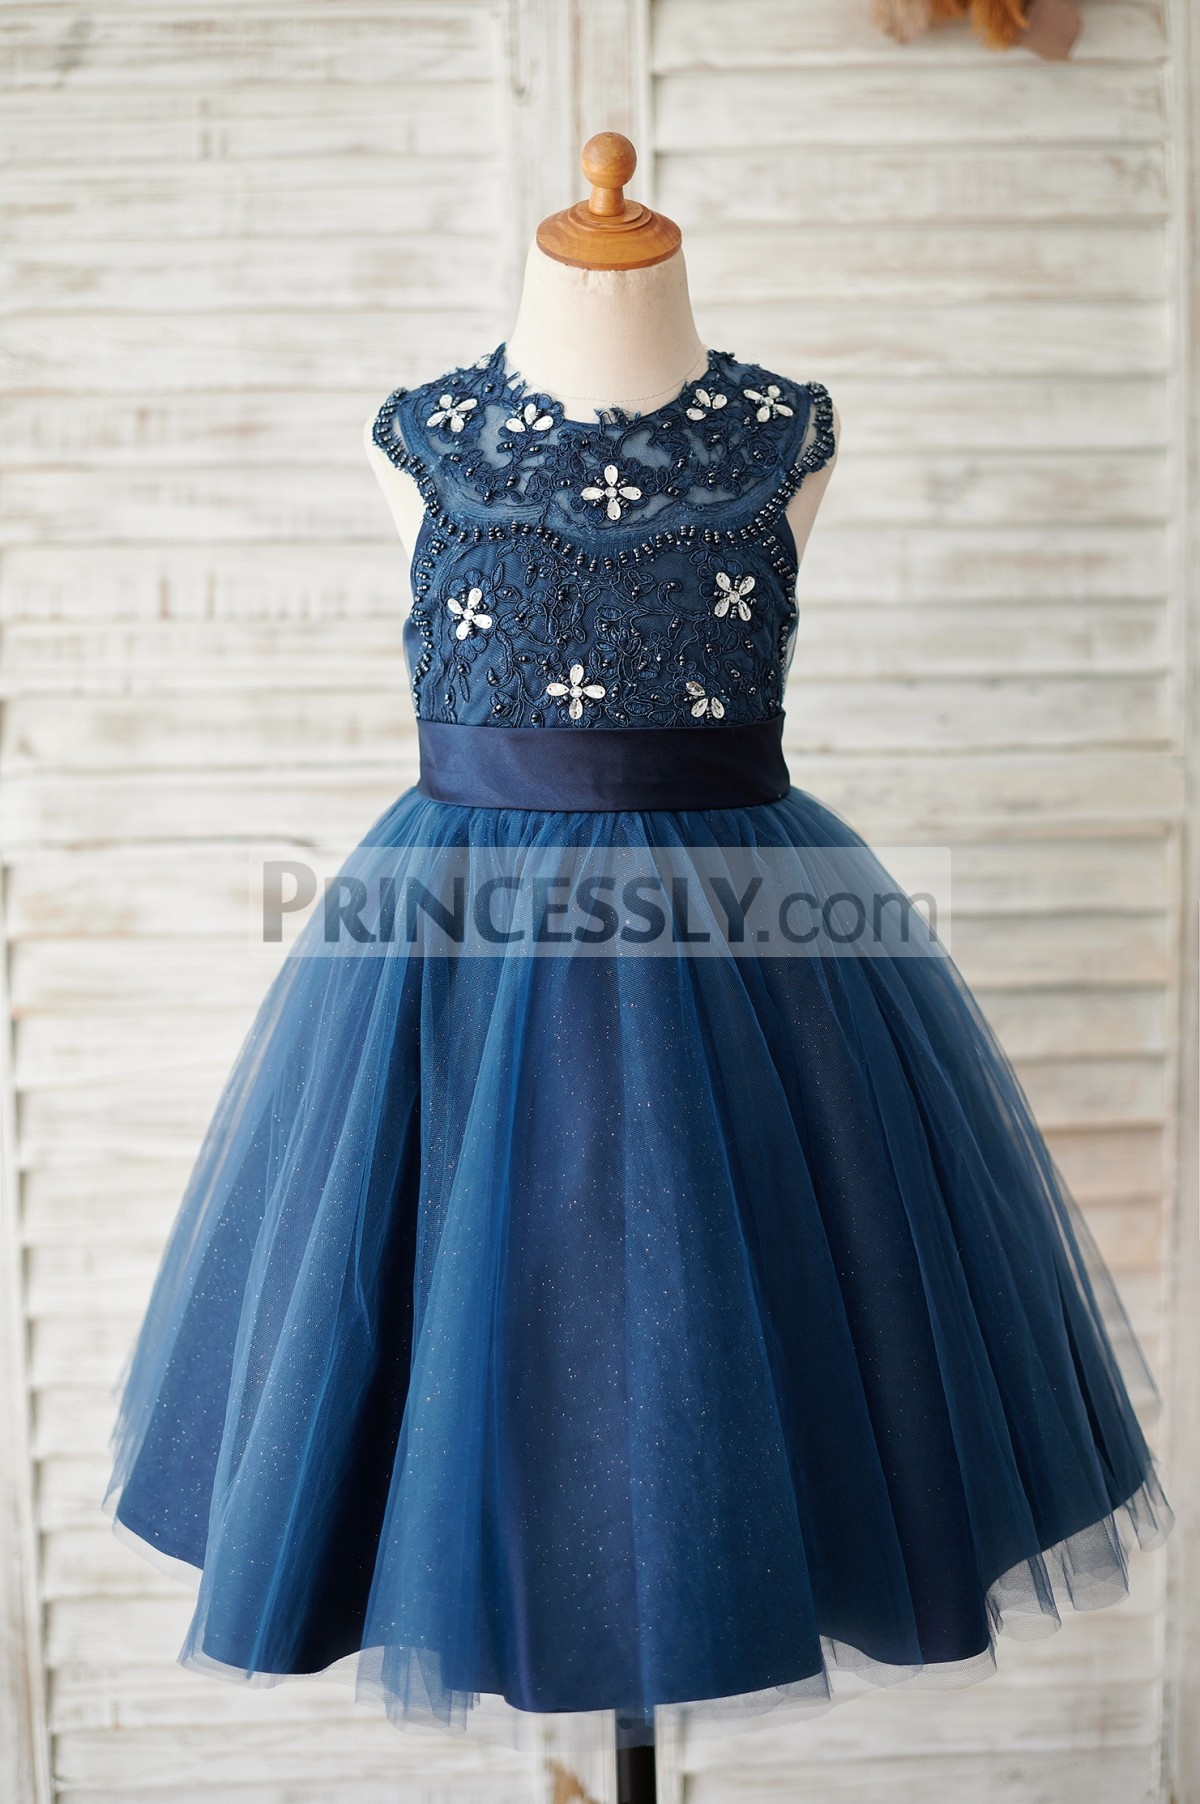 Beading work navy blue lace tulle wedding baby girl dress